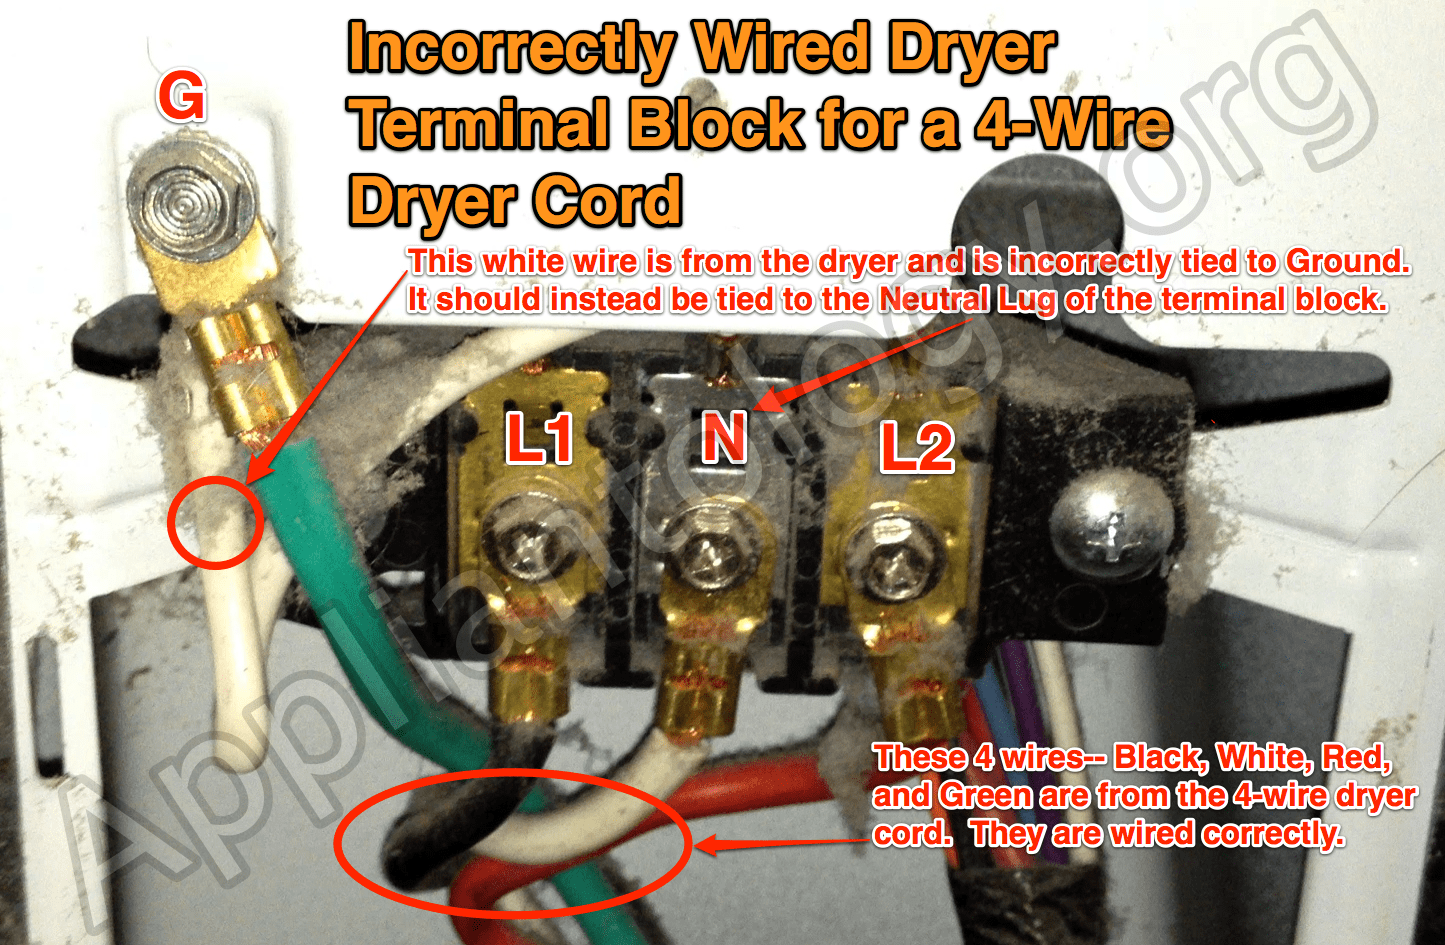 For A Stove Plug Wiring Diagram Incorrectly Wired Dryer Terminal Block For A 4 Wire Dryer